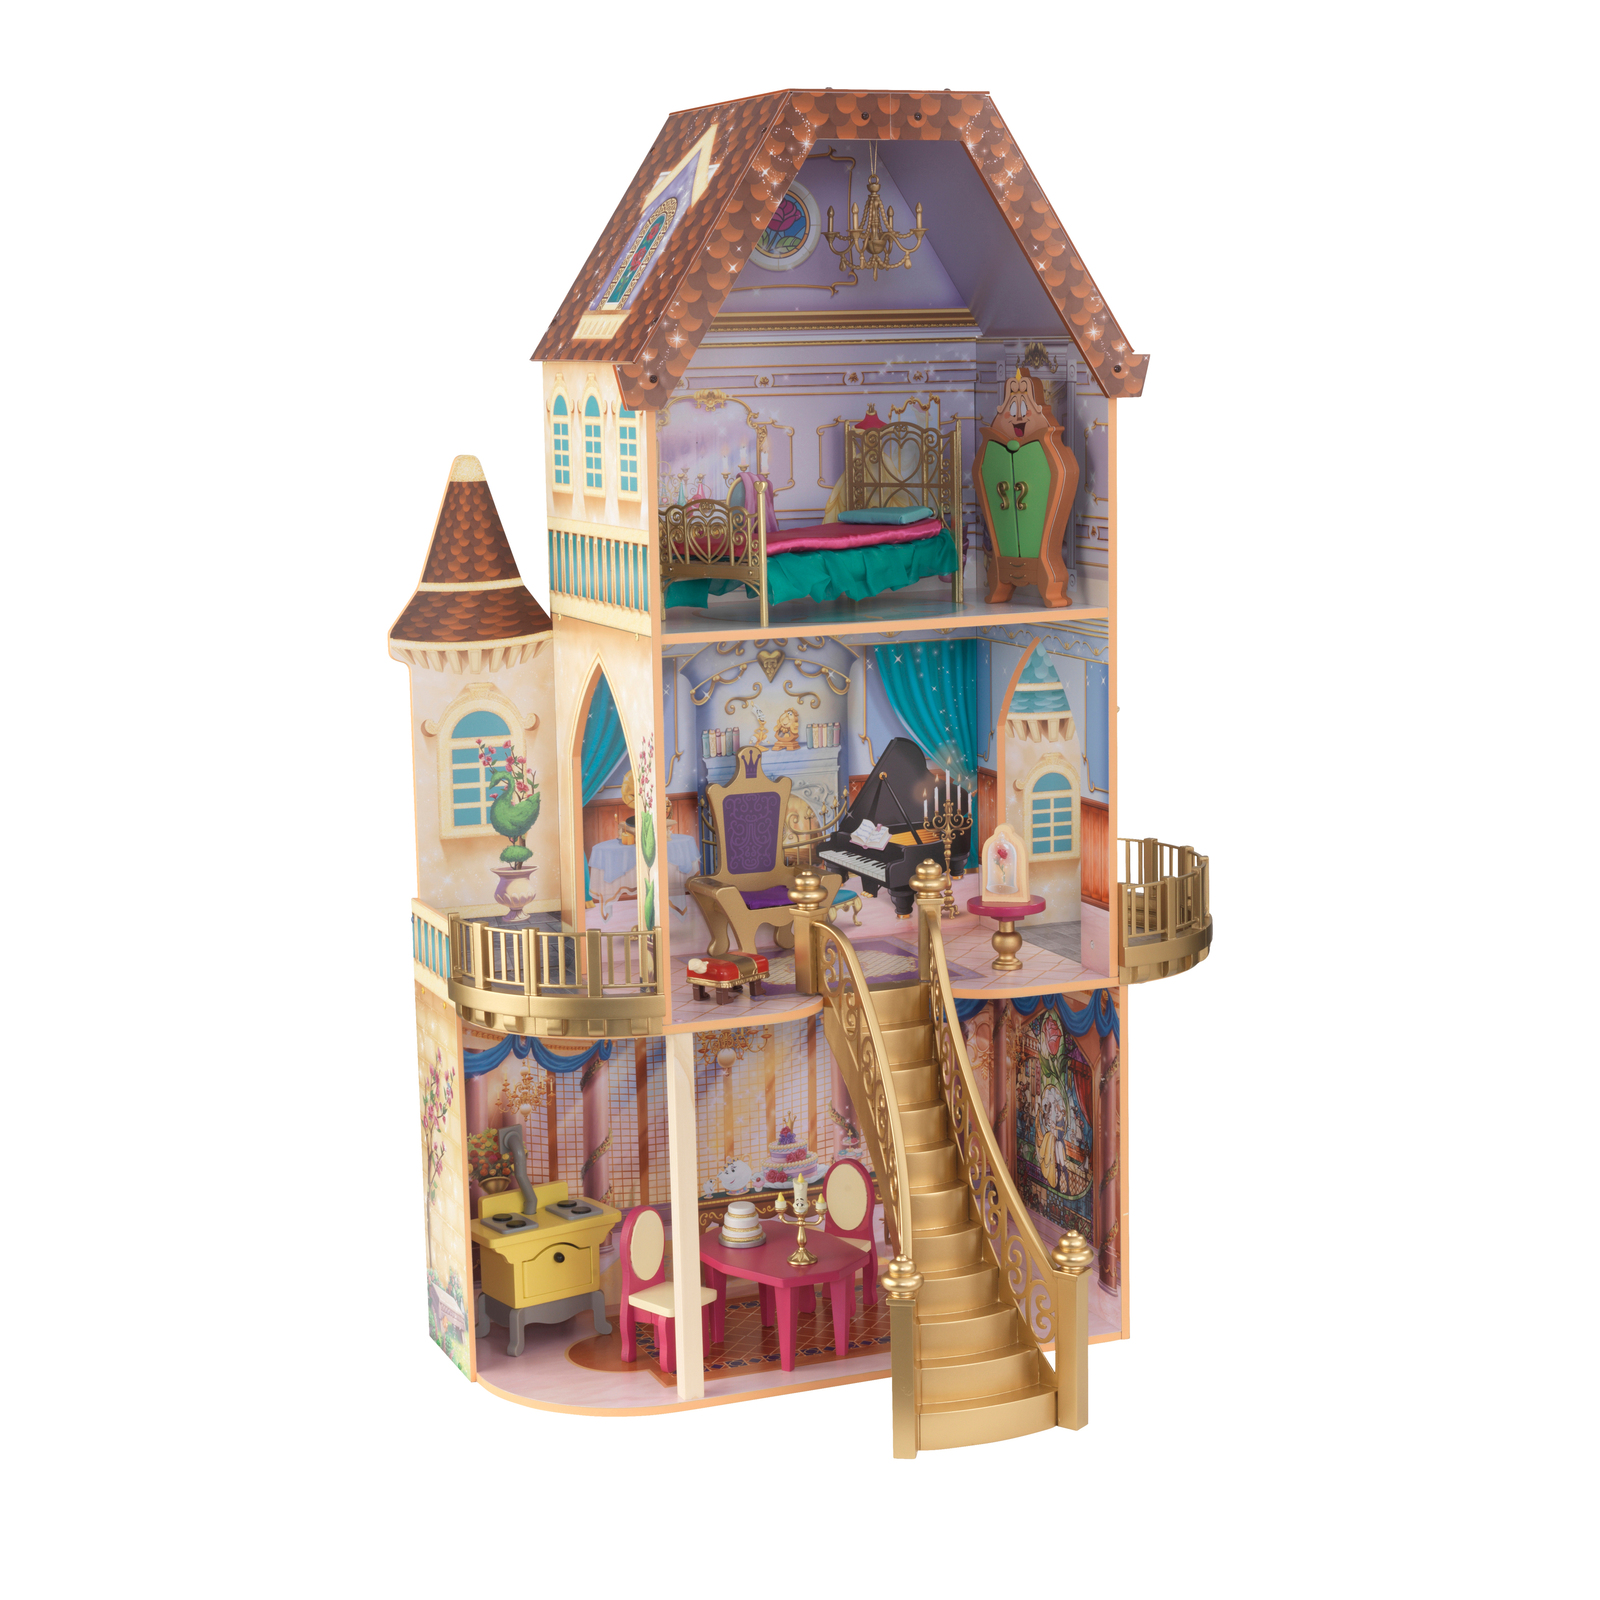 Disney Princess Belle Enchanted Dollhouse w/Furniture and Accessories image 2